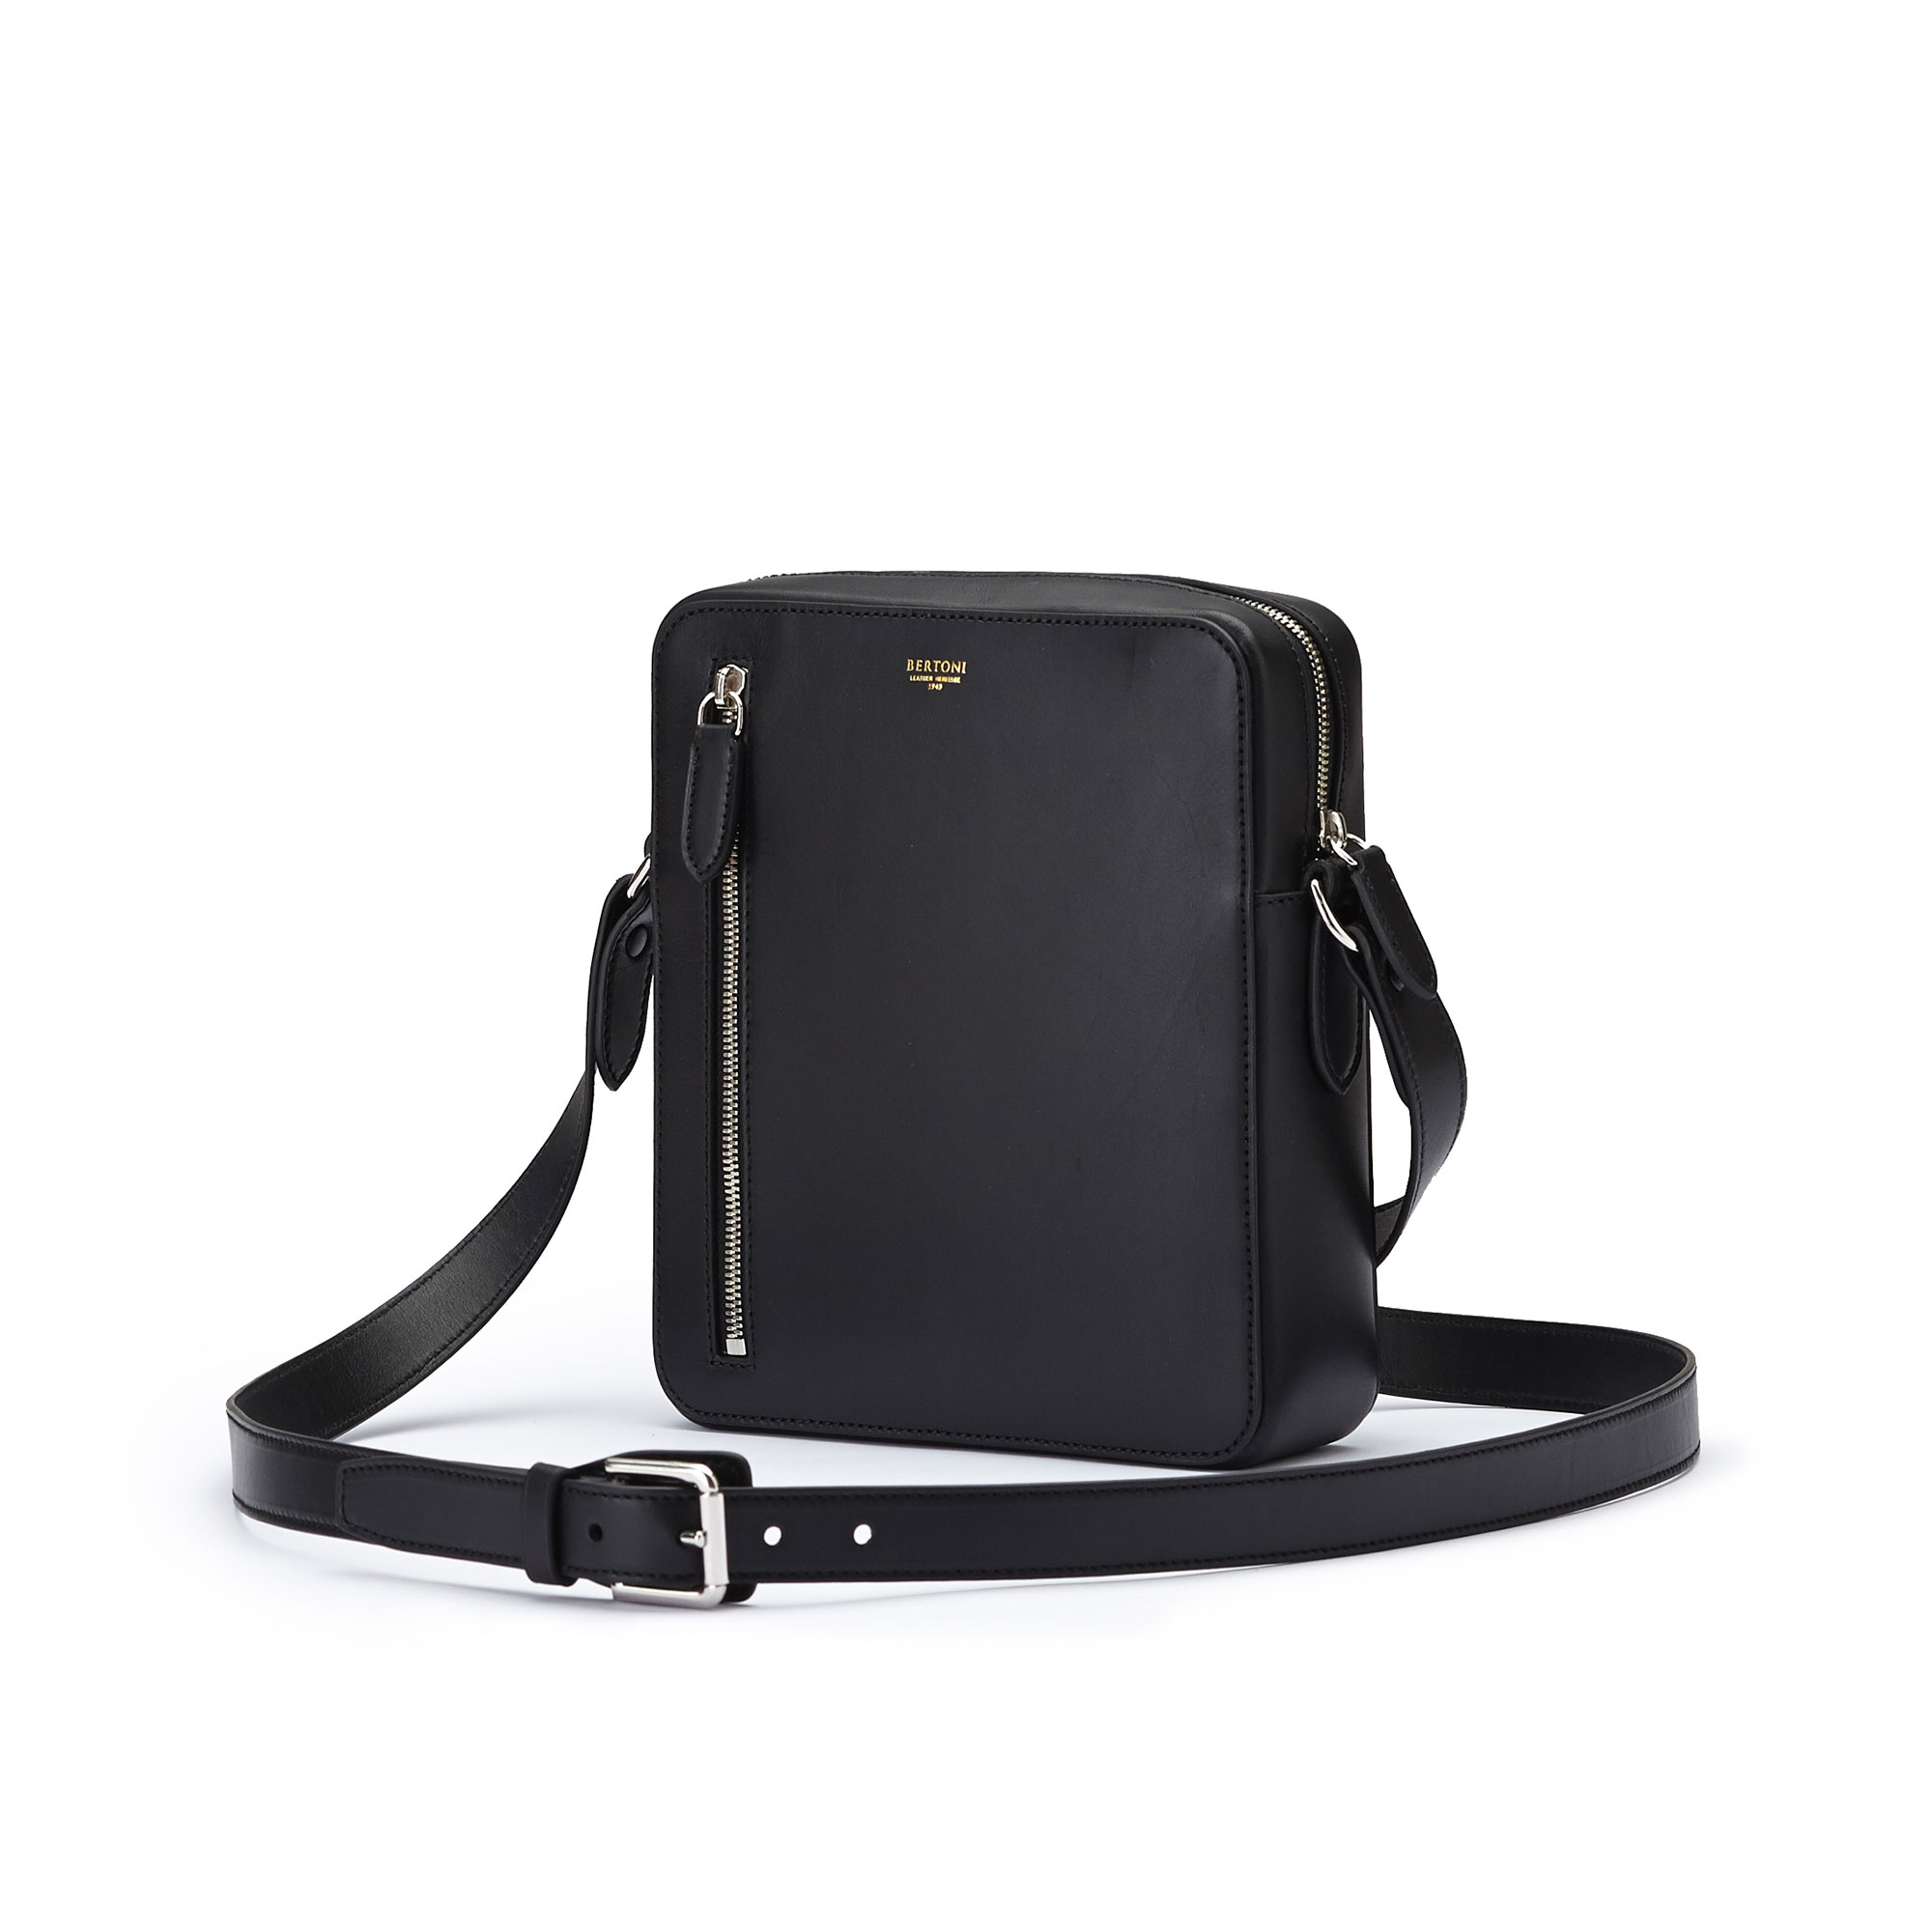 The black french calf Man Bag by Bertoni 1949 03